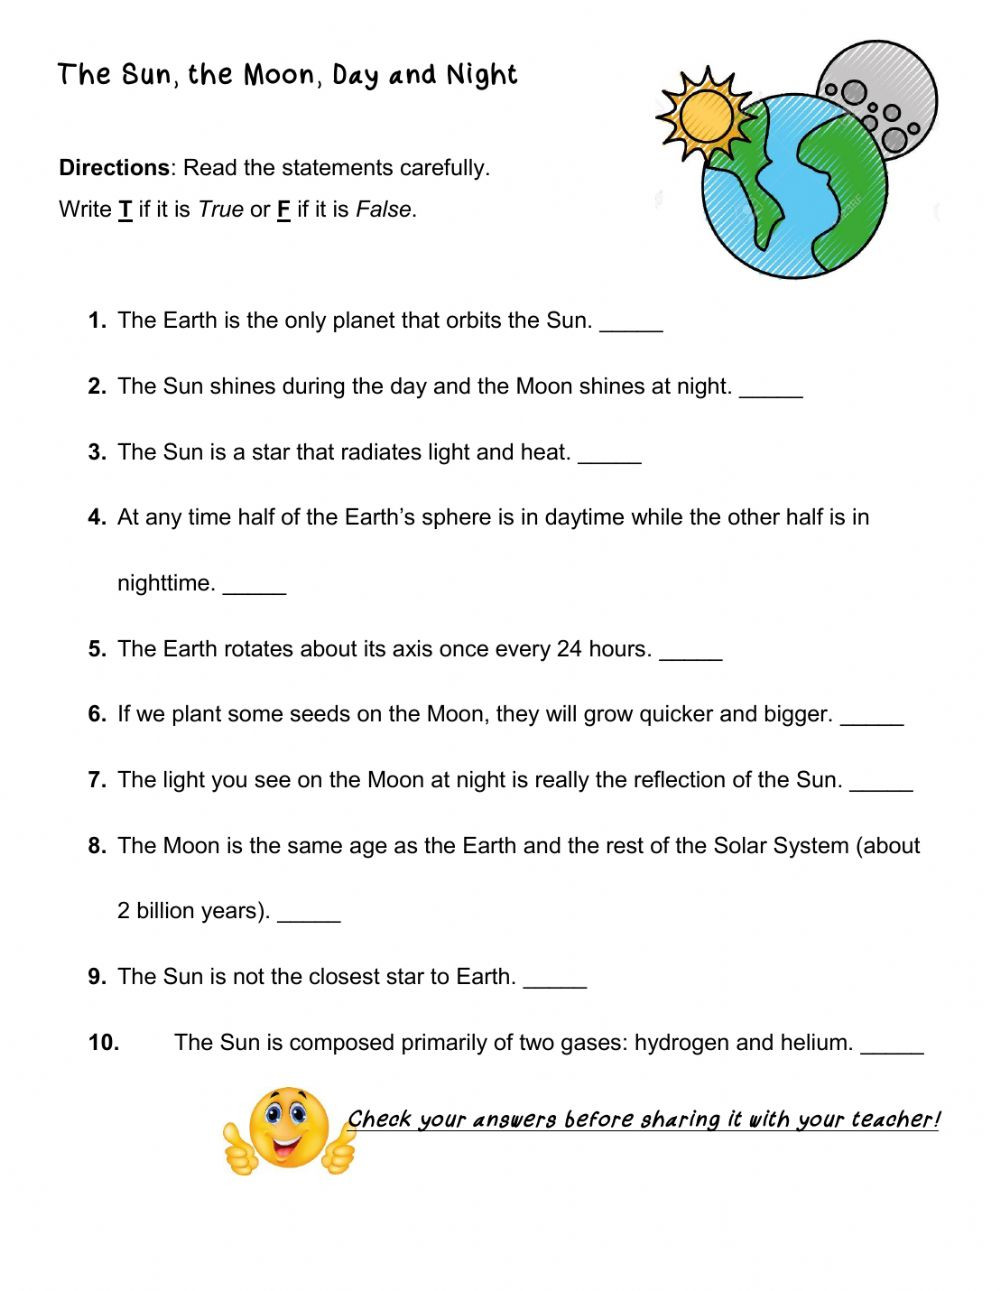 Solar System Worksheets 5th Grade the Sun the Moon Day and Night Interactive Worksheet